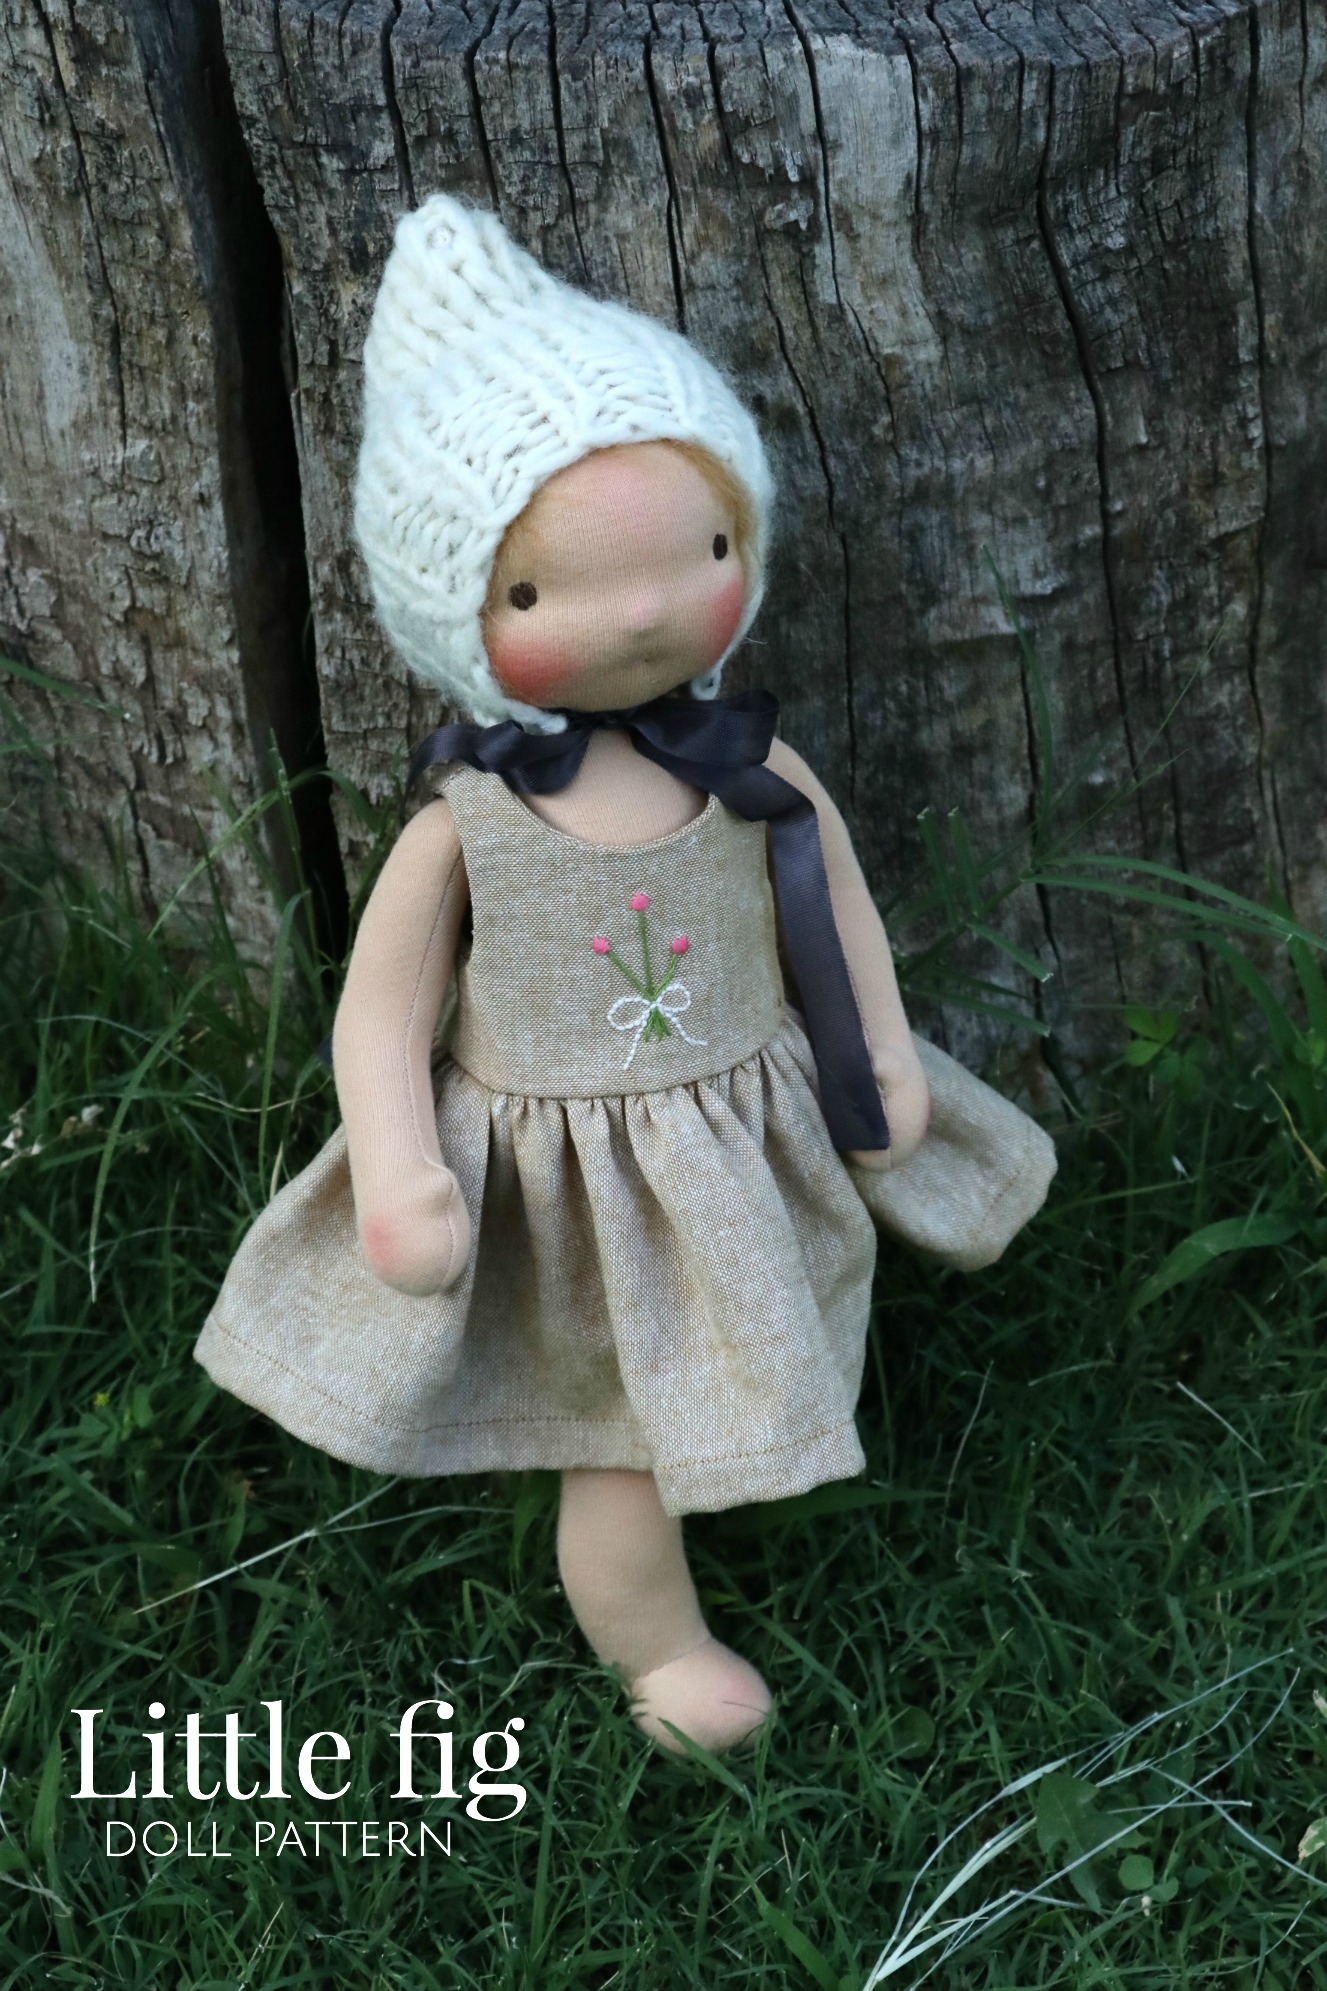 """The Little Fig Doll Pattern allows you to create a 14"""" tall doll, made with cotton fabric and stuffed with wool. A soft mohair wig adds so much charm and playfulness to the doll. (via Fig and me)"""